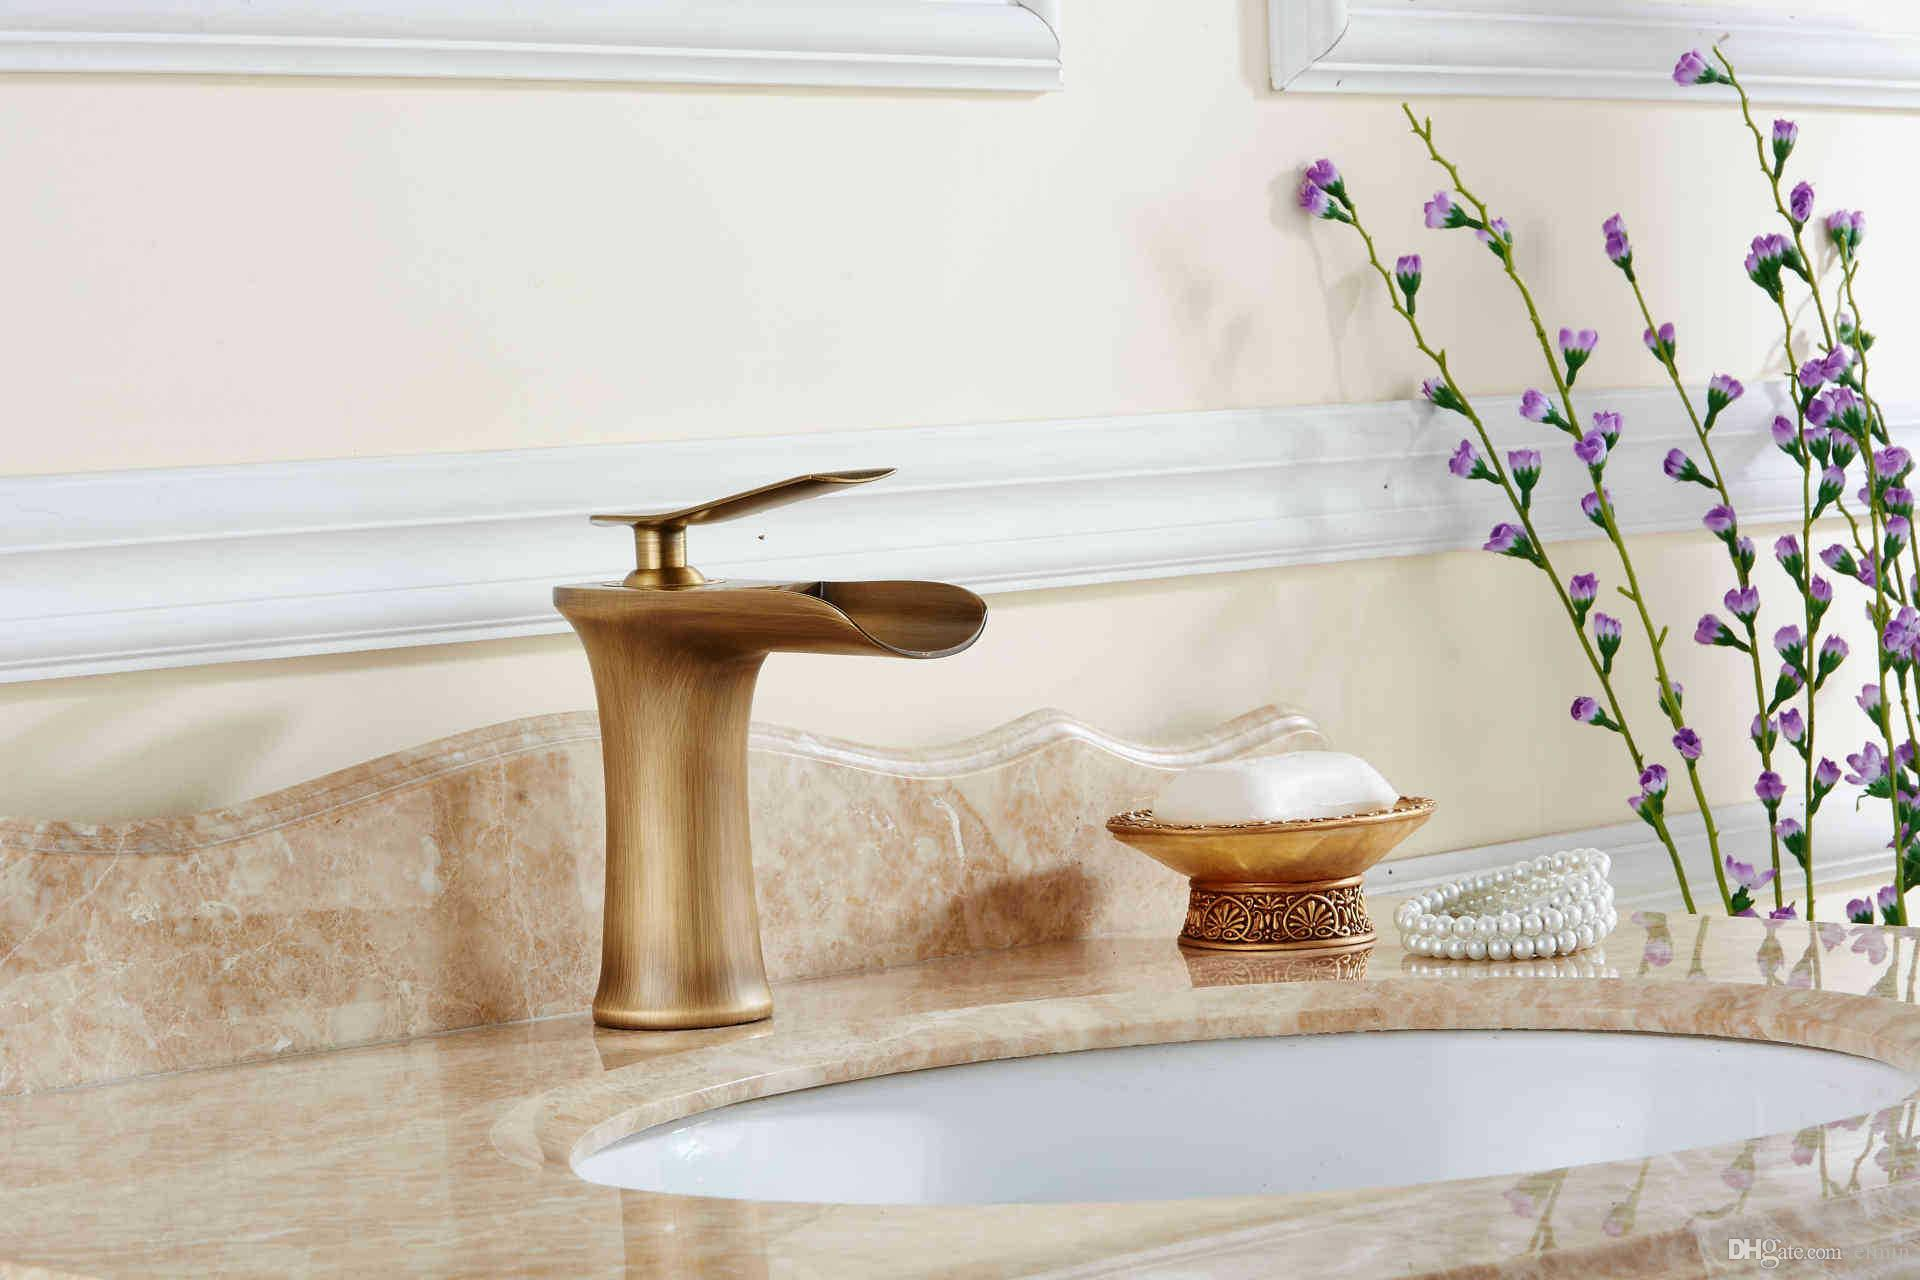 Copper basin faucet Kitchen & bathroom faucet Single hole of cold faucet Waterfall tap Worlde style